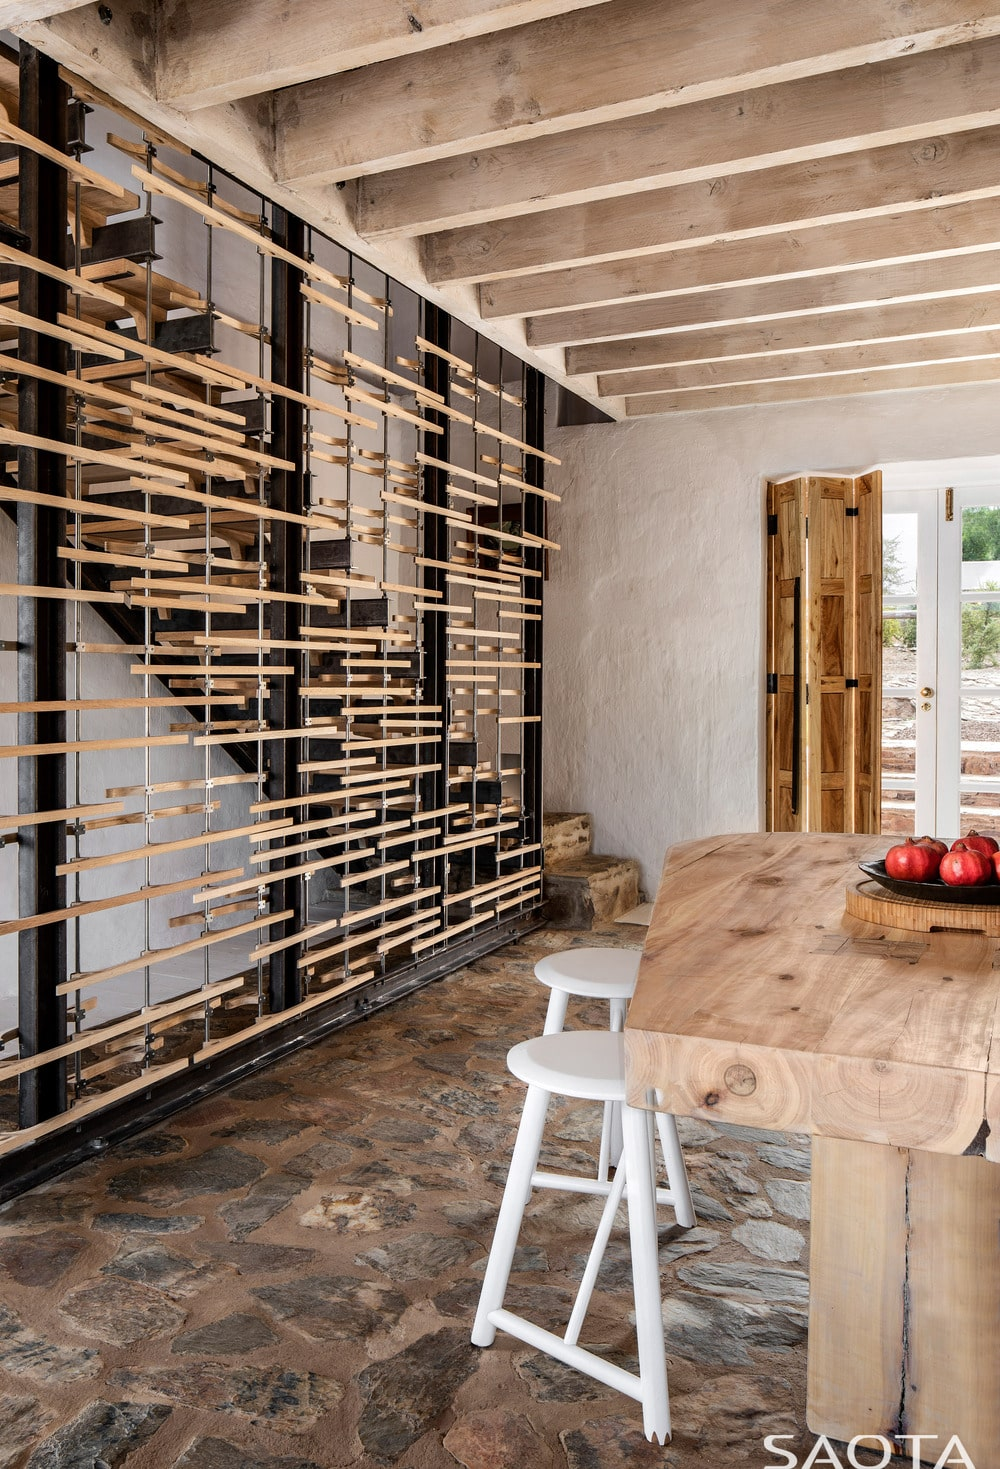 A few steps from the eat-in kitchen is the staircase that is adorned with wooden accents and a beamed ceiling.